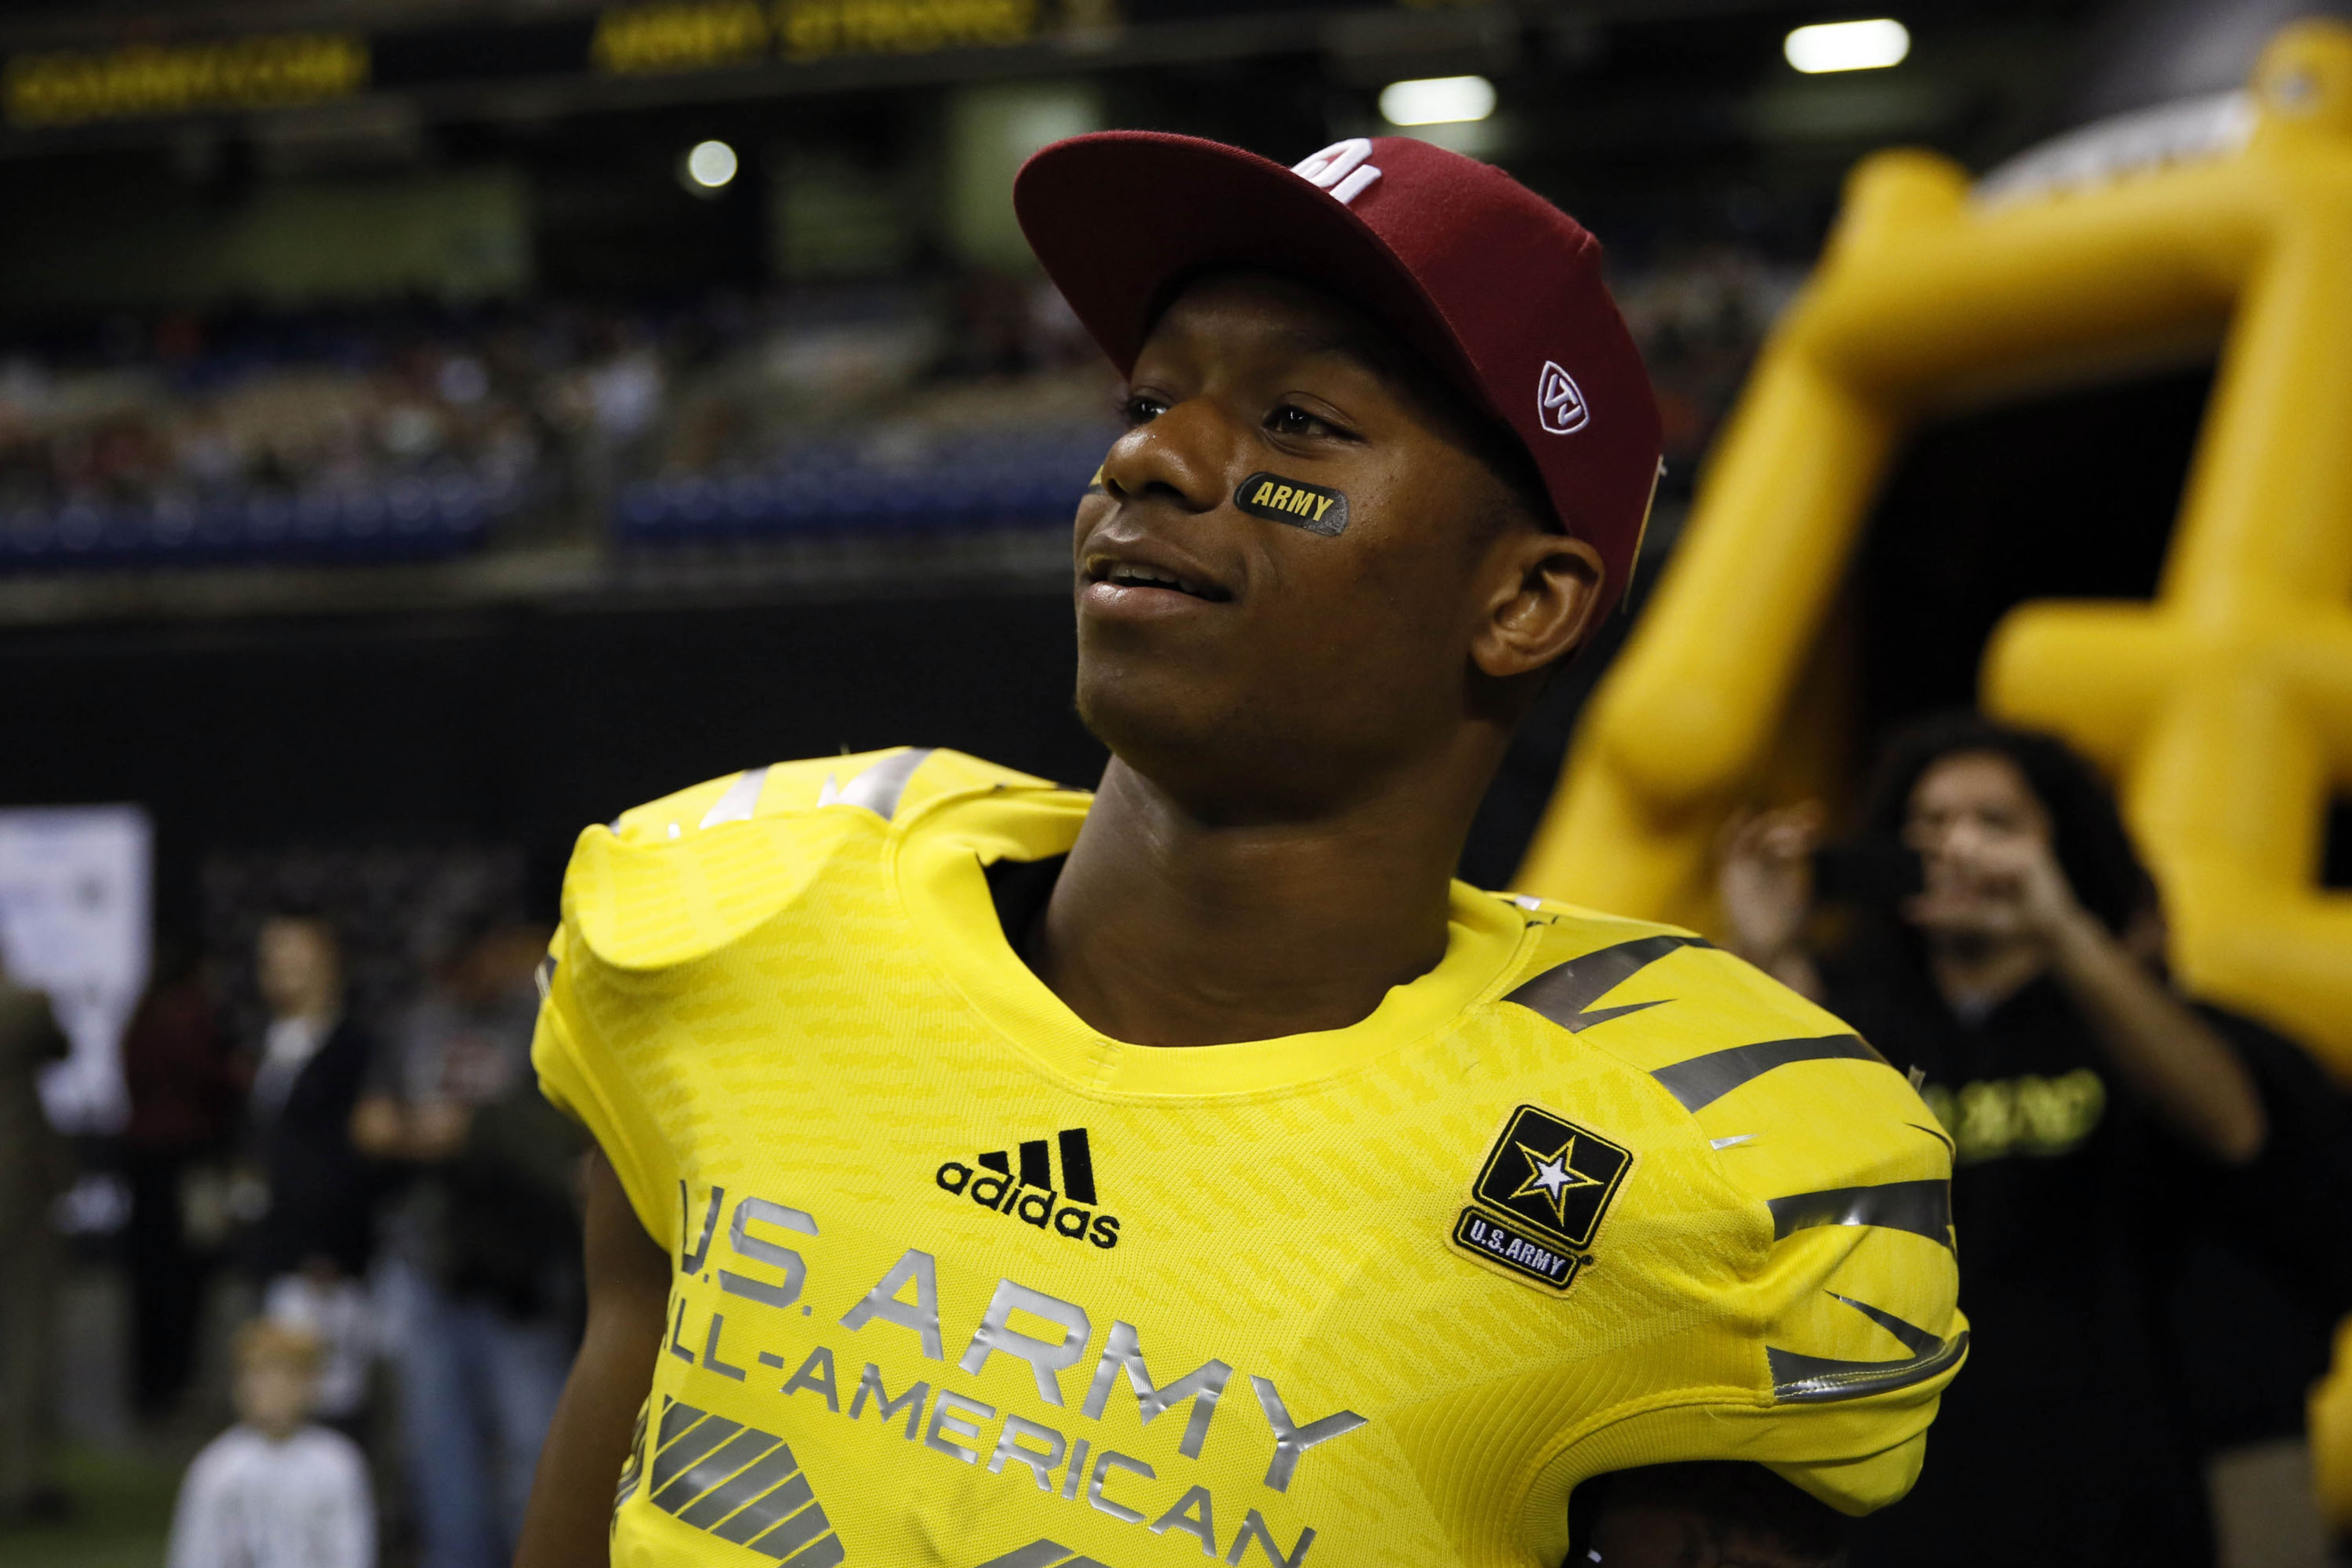 5-star Oklahoma RB Joe Mixon involved in 'serious altercation,' according to reports